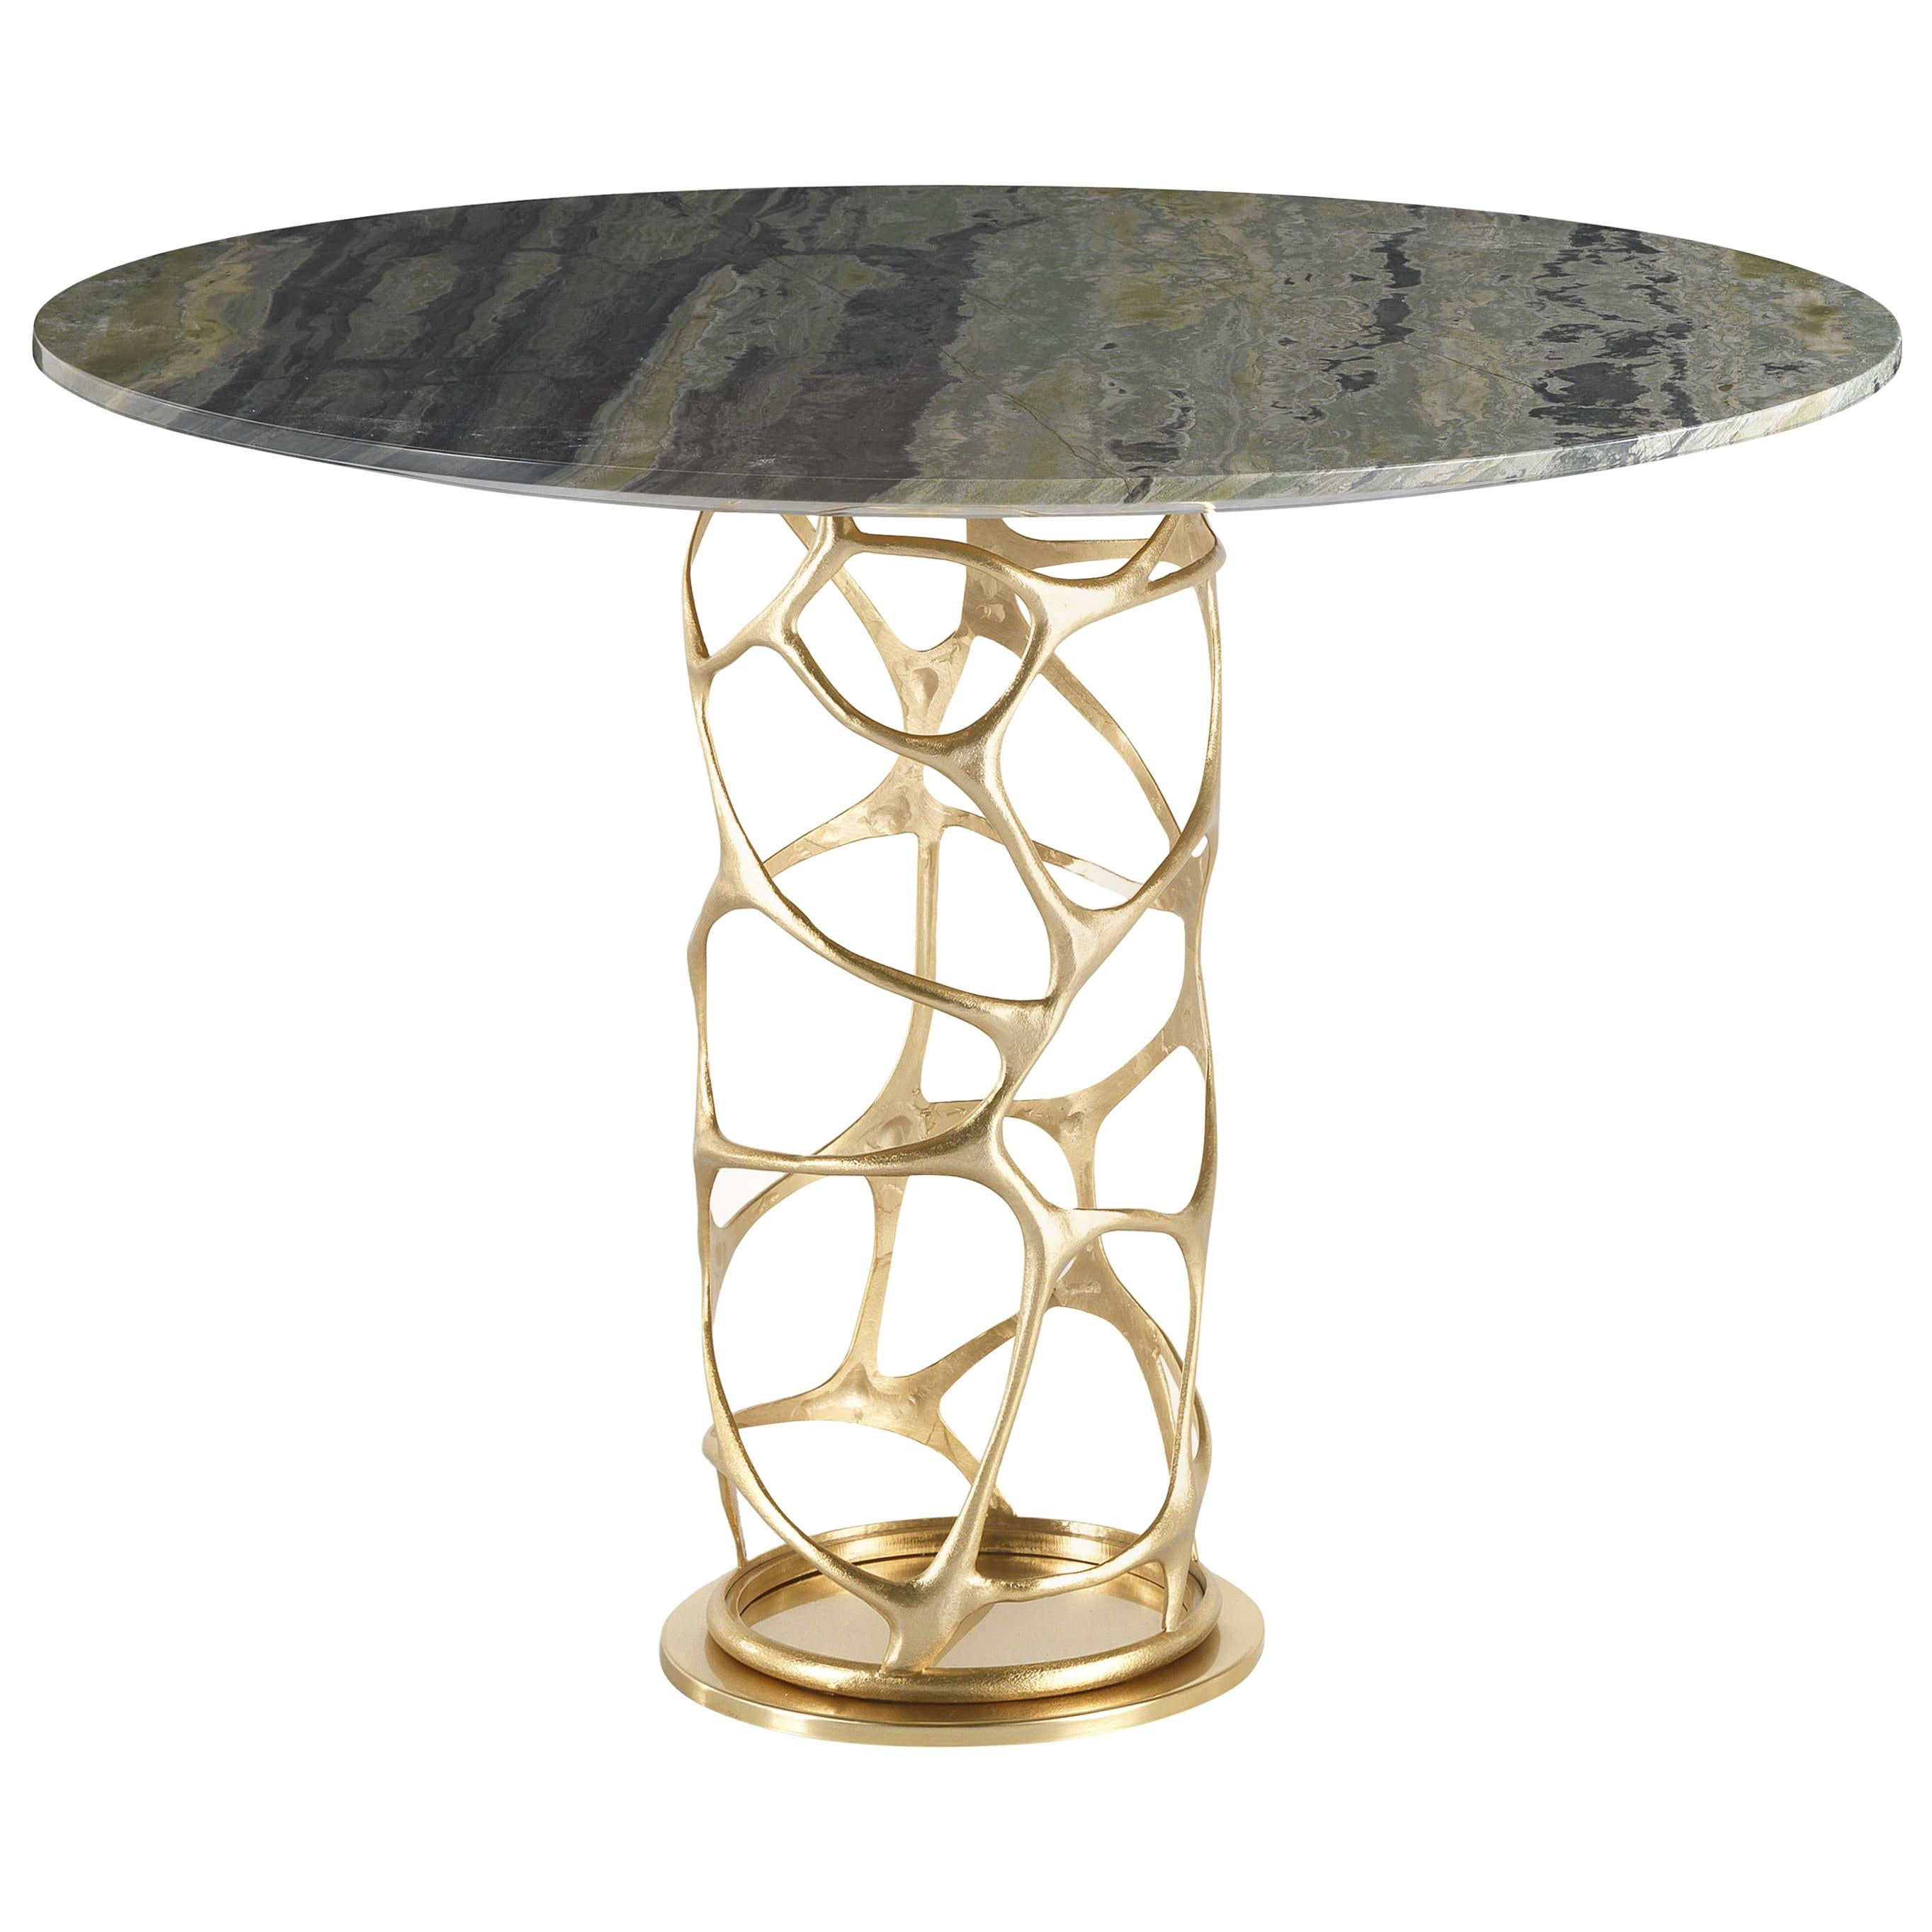 Sioraf Side Table in Metal Base and Marble Top by Roberto Cavalli Home Interiors